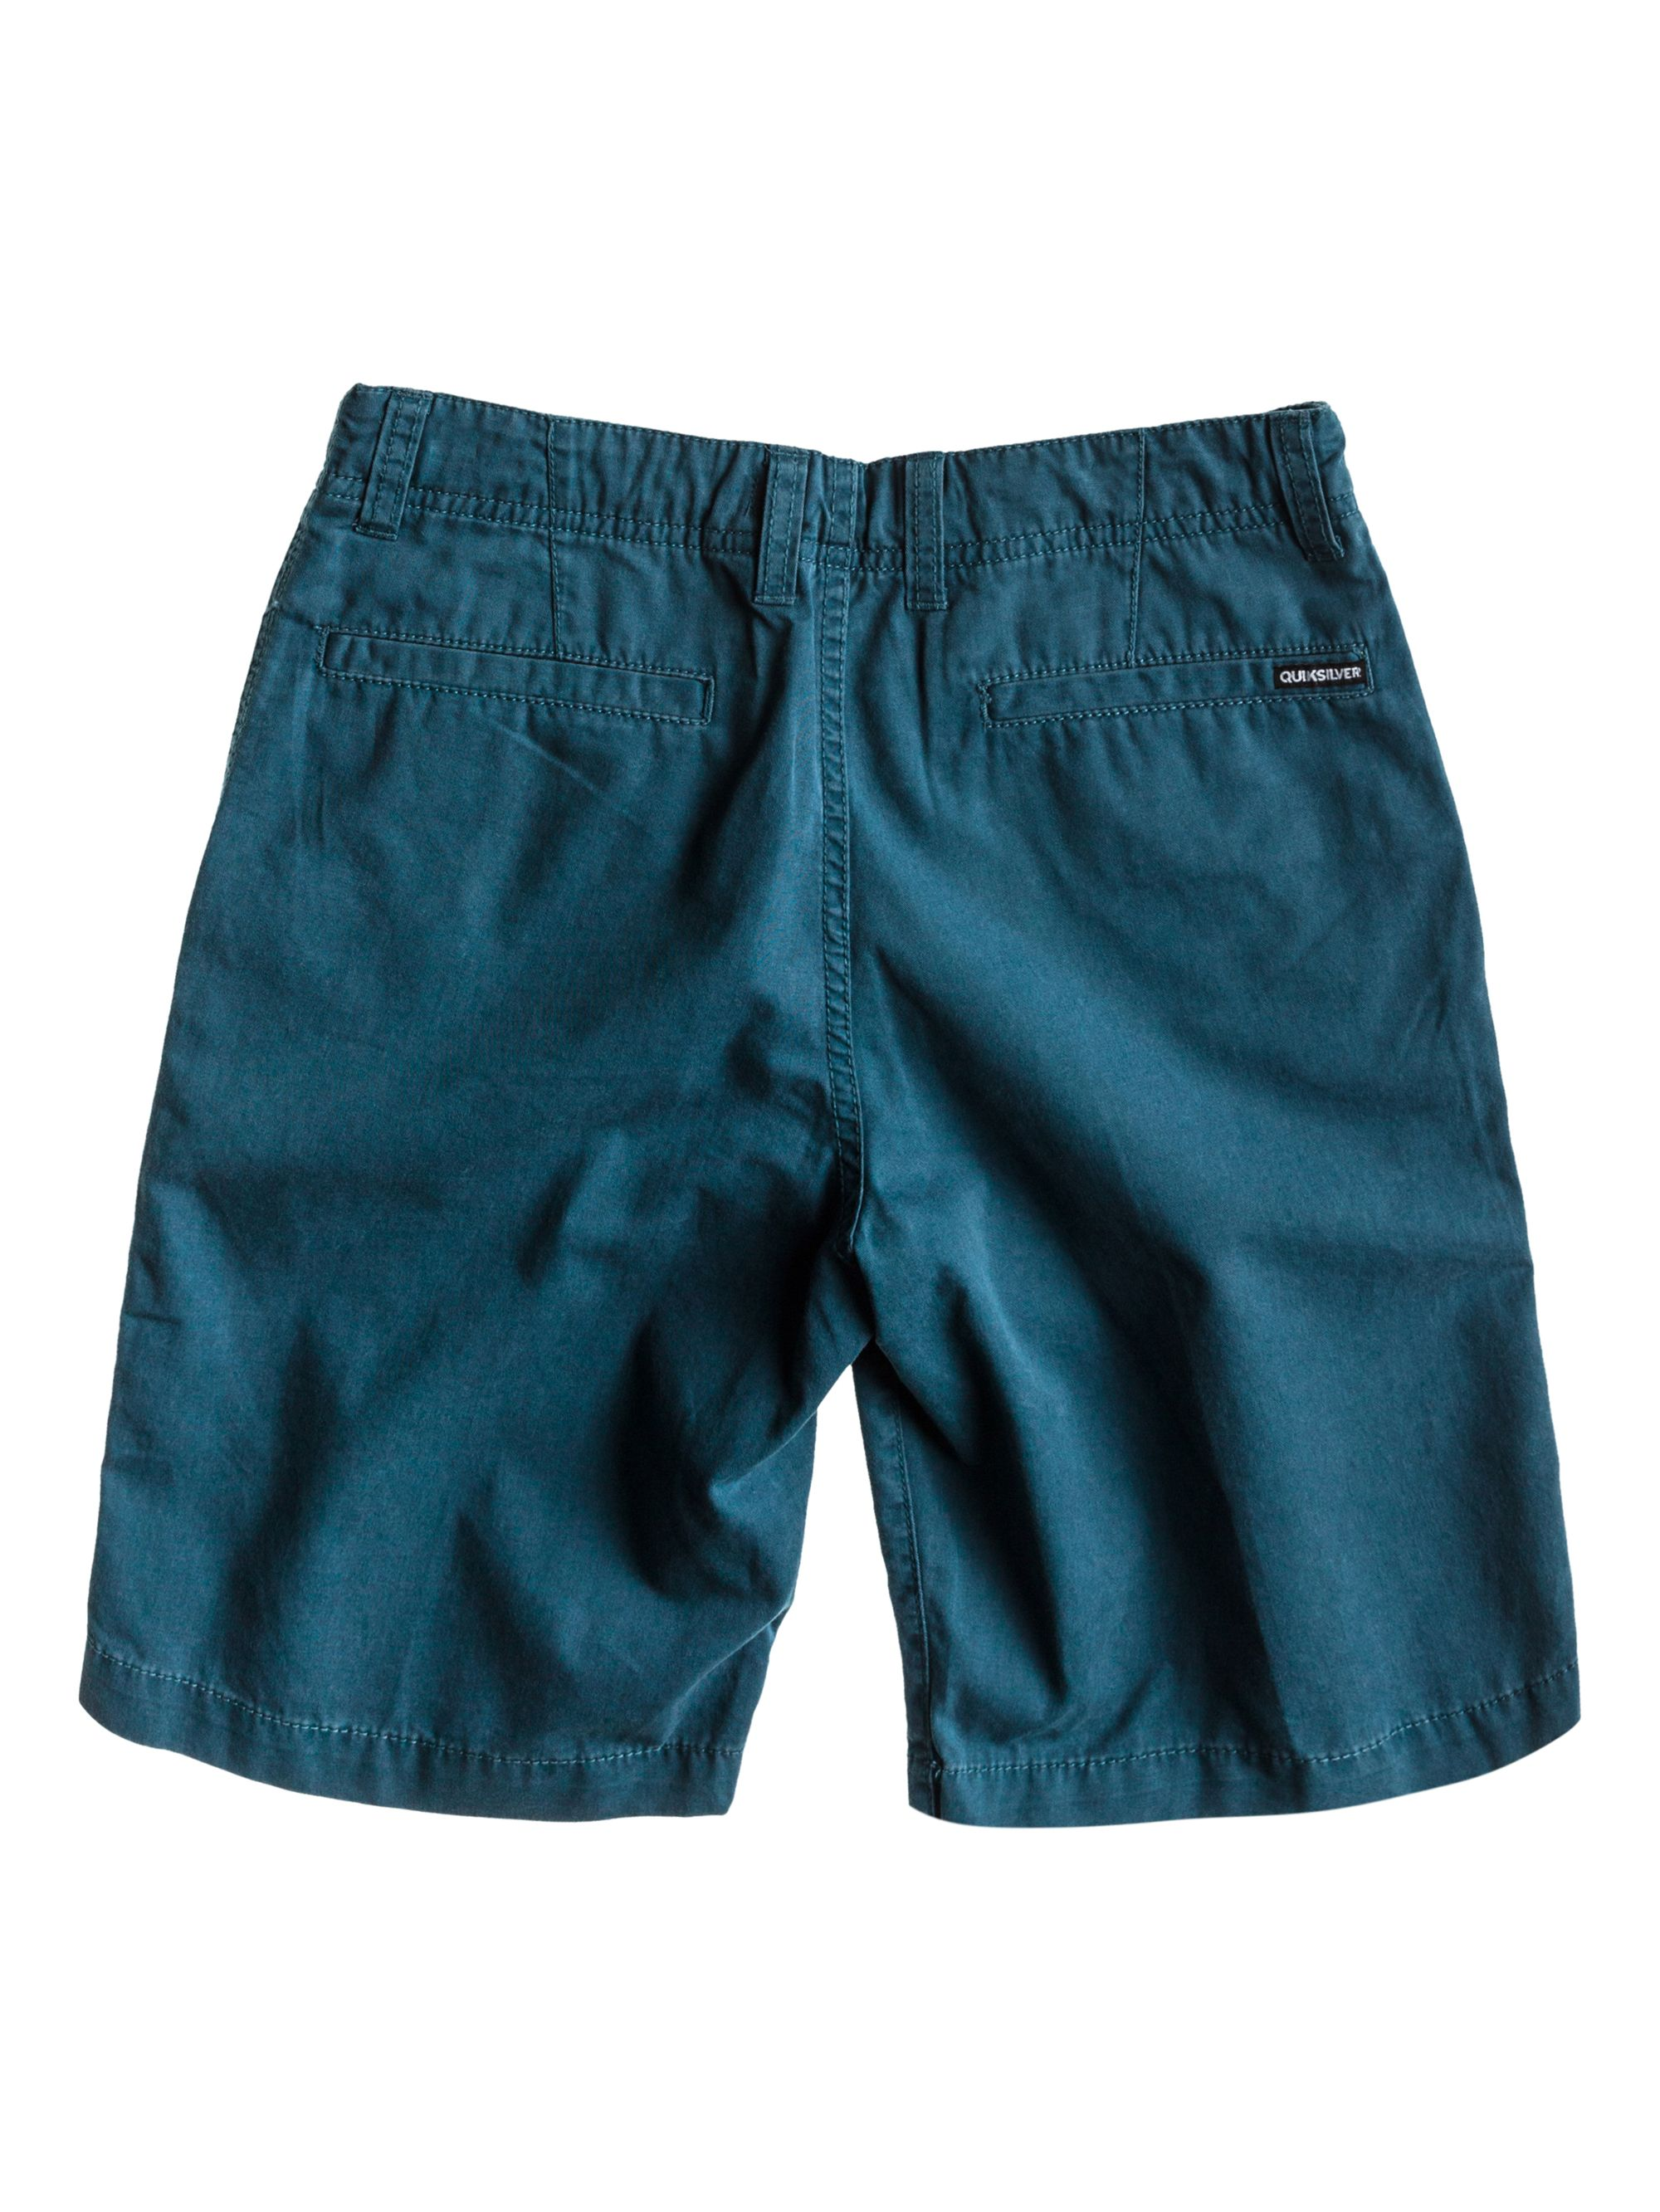 Boys minor road ej18 shorts